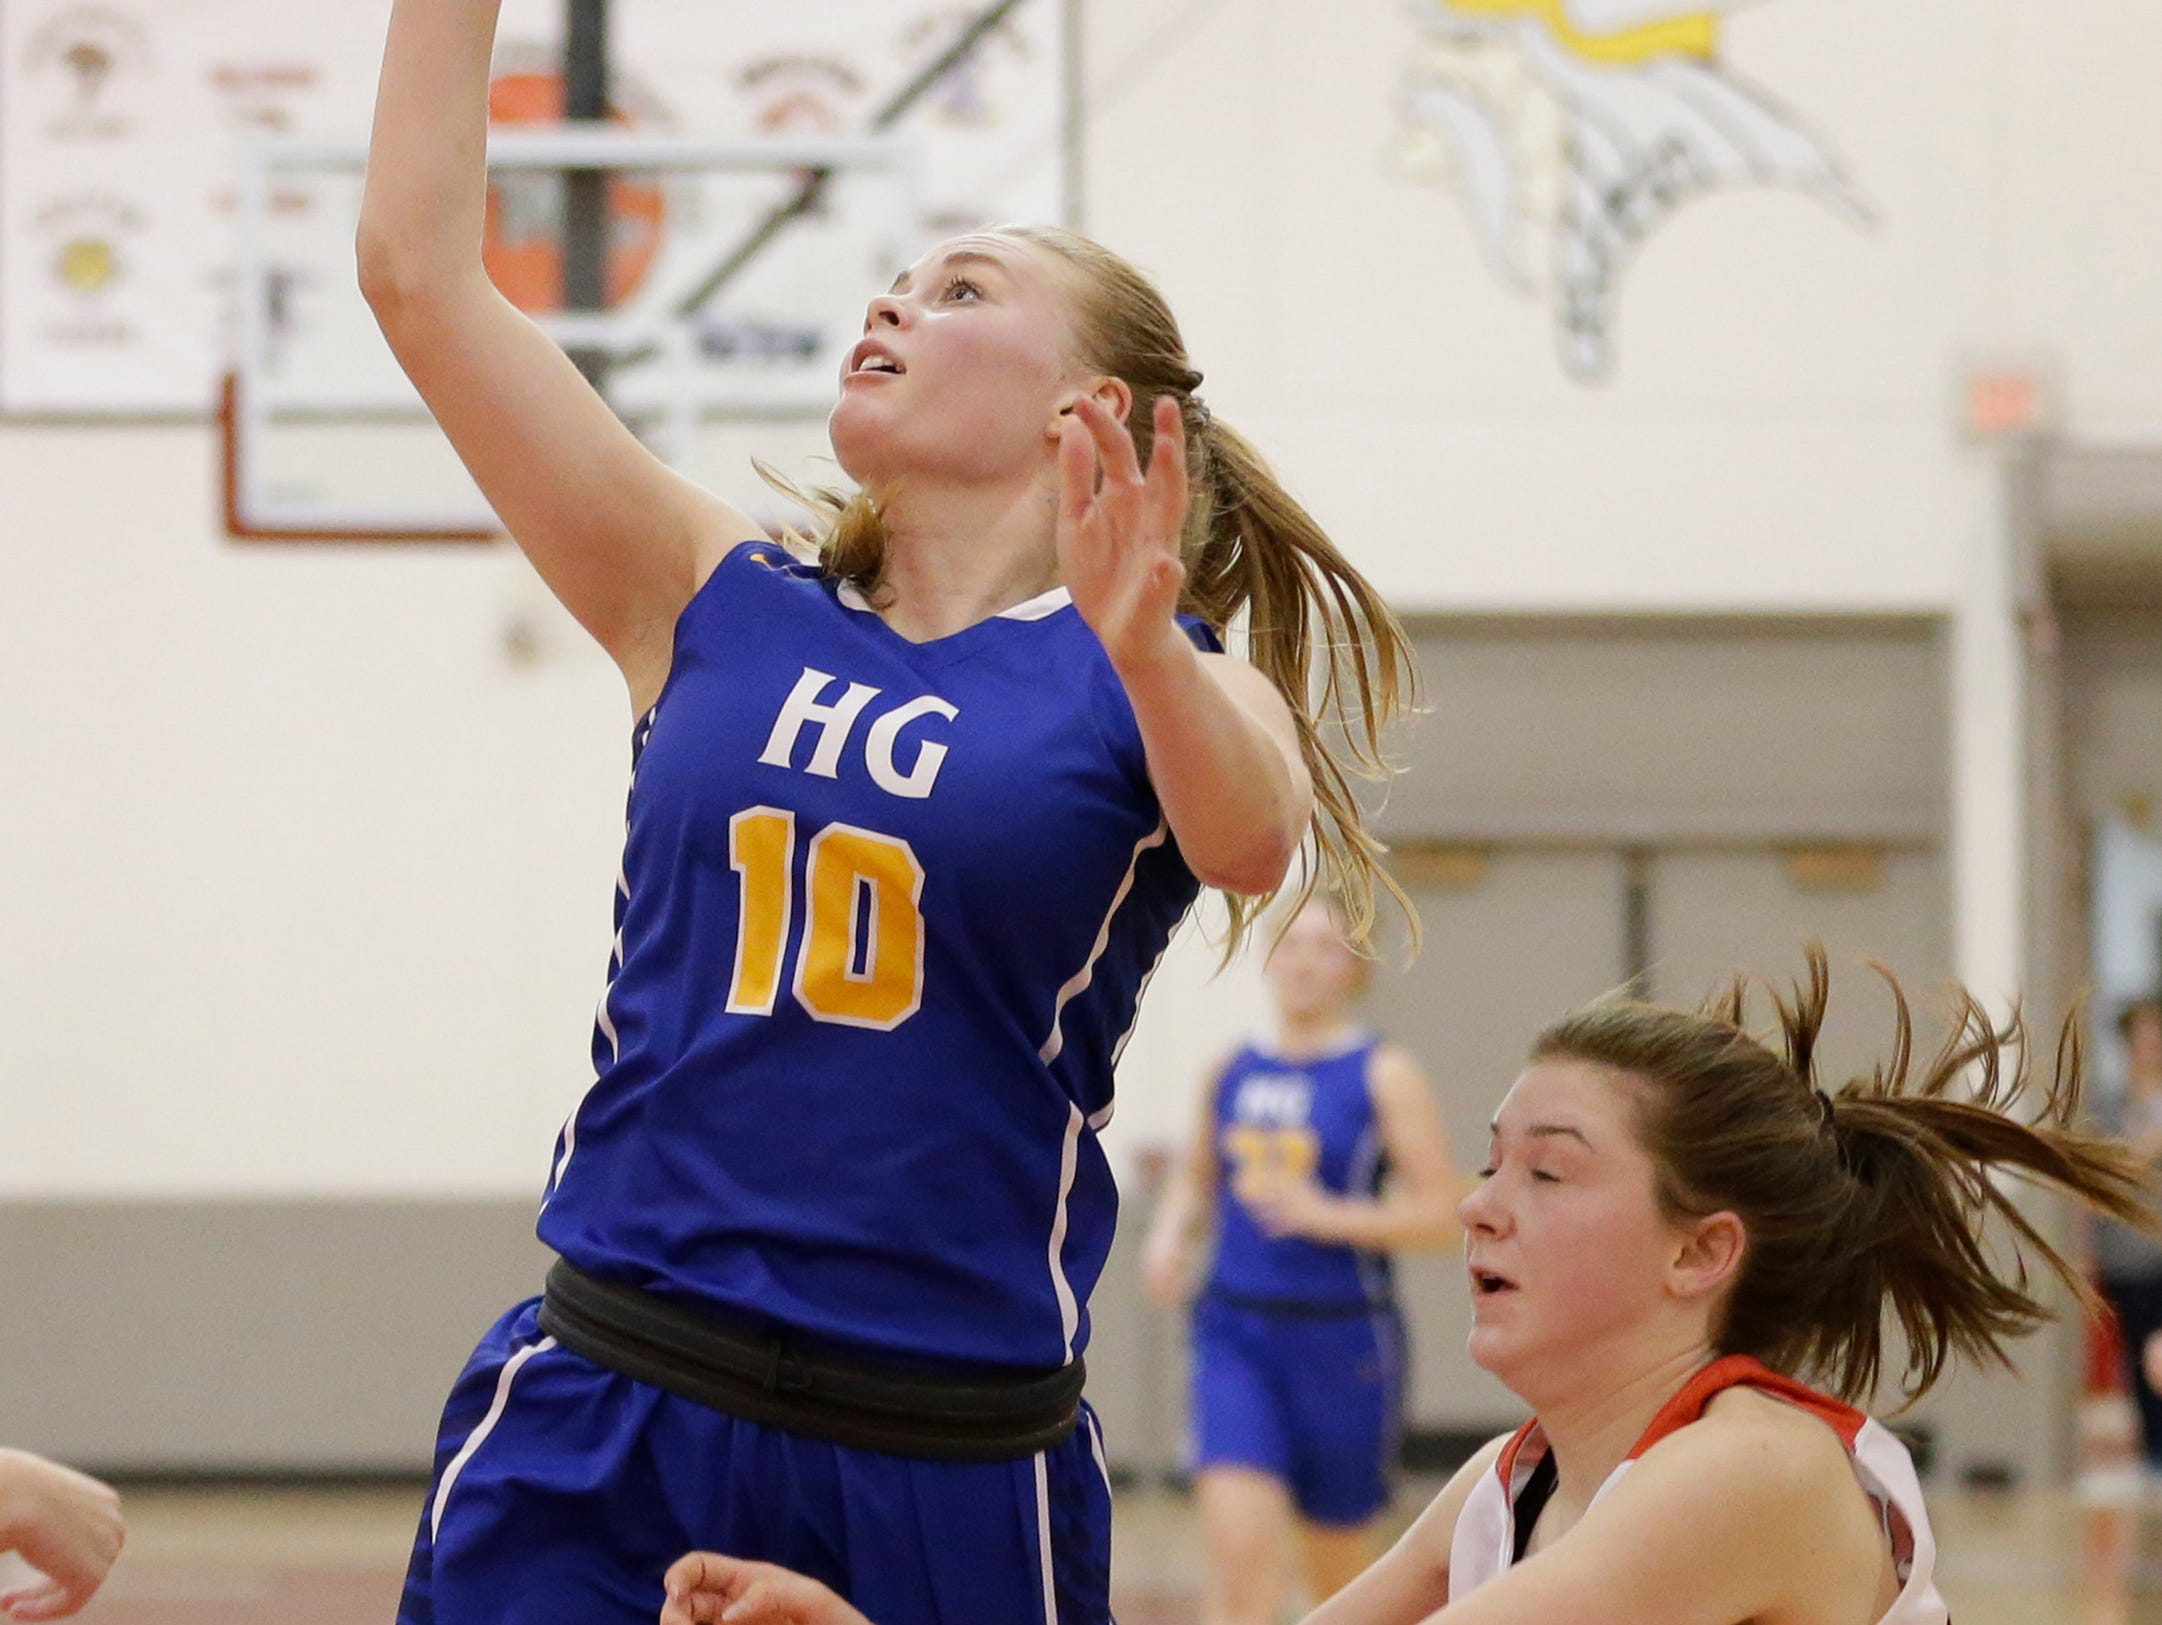 Howards Grove's Leah Parnitzke (10) drives past Valders' Kate Wagner (20) for a layup during a non-conference game at Valders High School Saturday, January 19, 2019, in Valders, Wis. Joshua Clark/USA TODAY NETWORK-Wisconsin